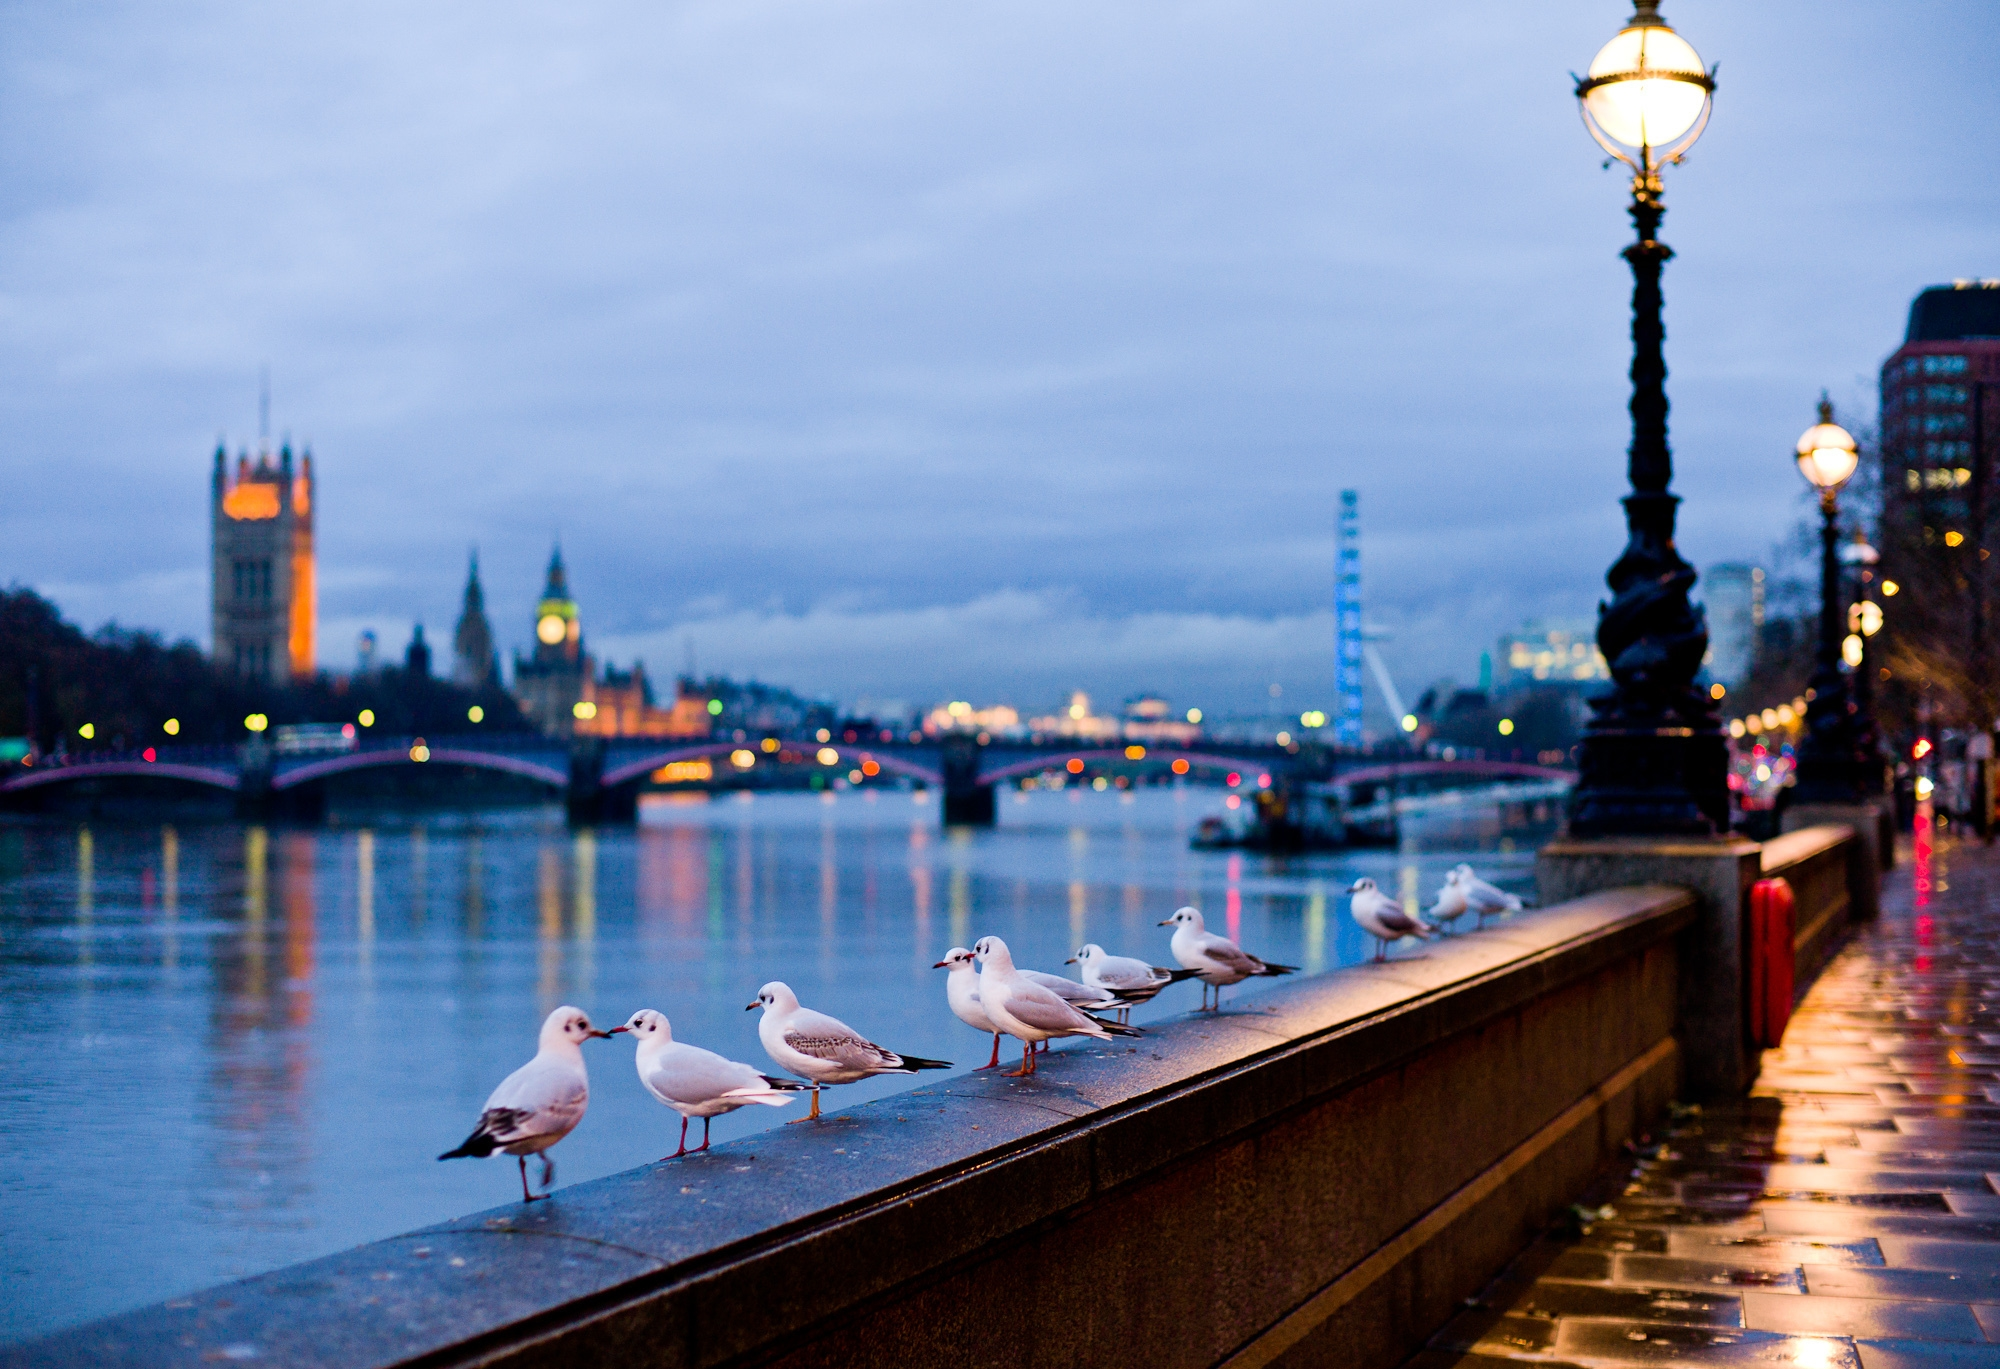 147035 download wallpaper City, London, England, Street, Rivers, Lamps, Lamp, Shine, Light, Bokeh, Boquet, Cities, Seagulls screensavers and pictures for free